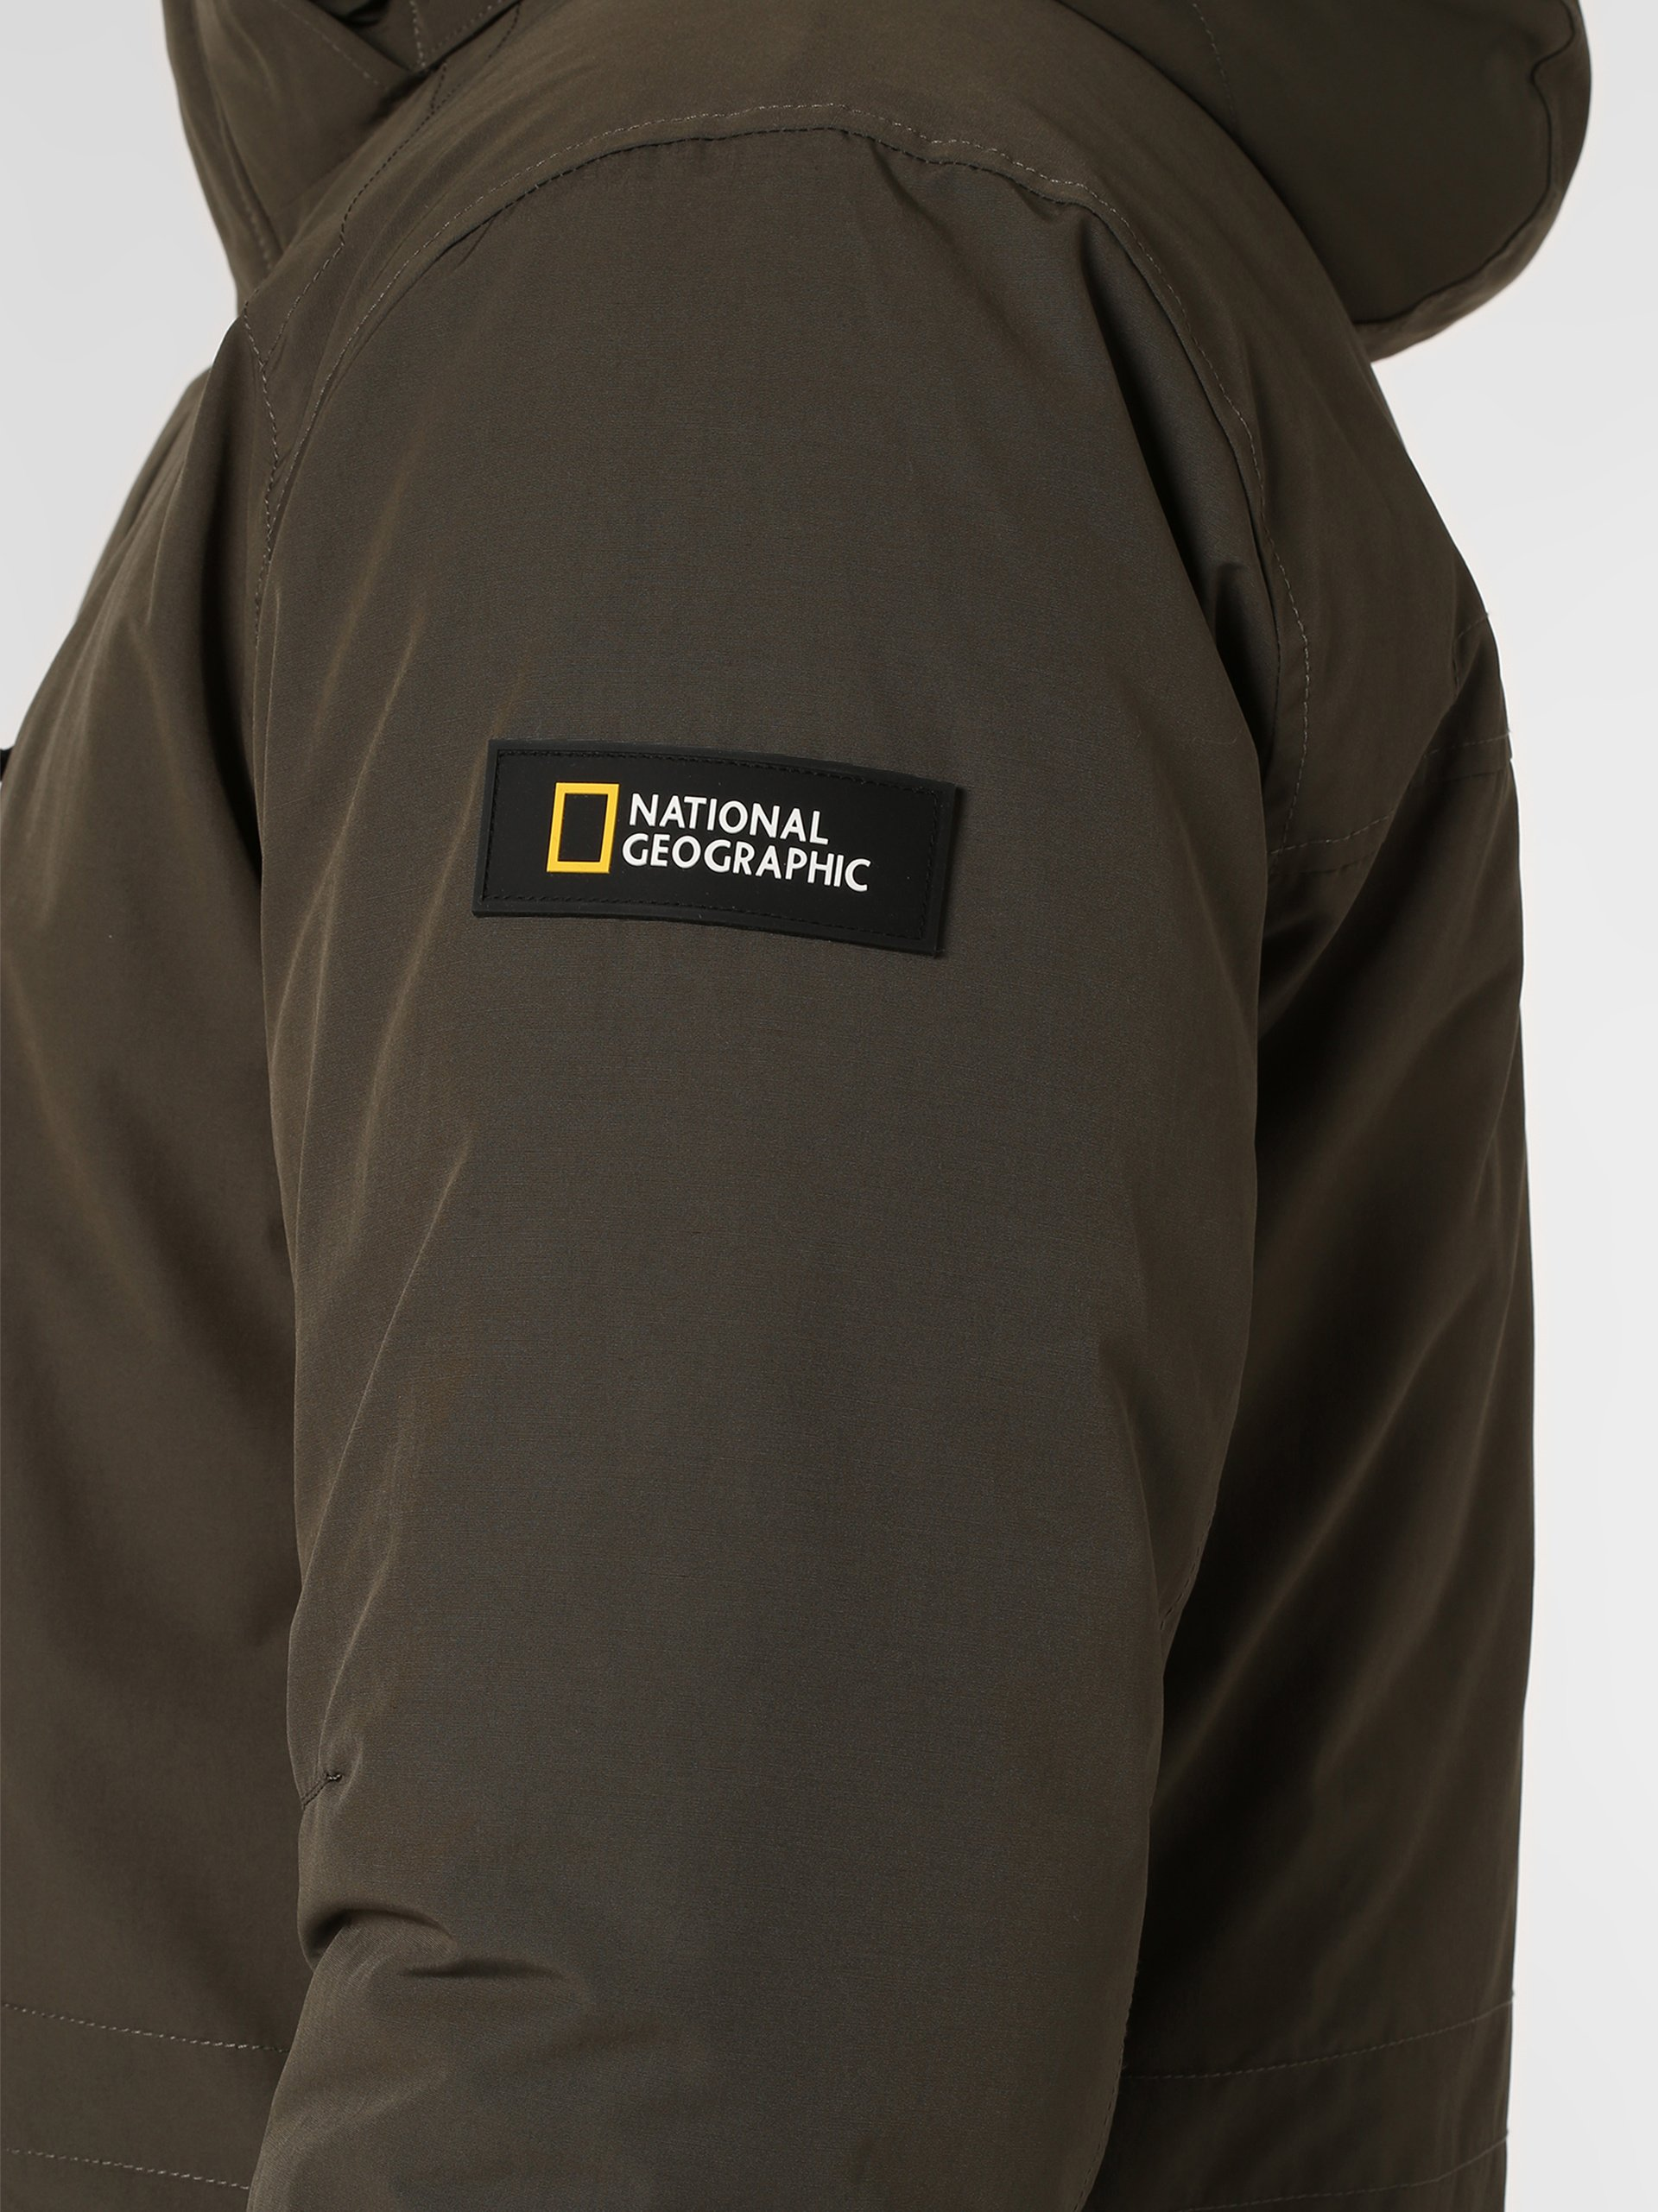 National Geographic Herren Jacke